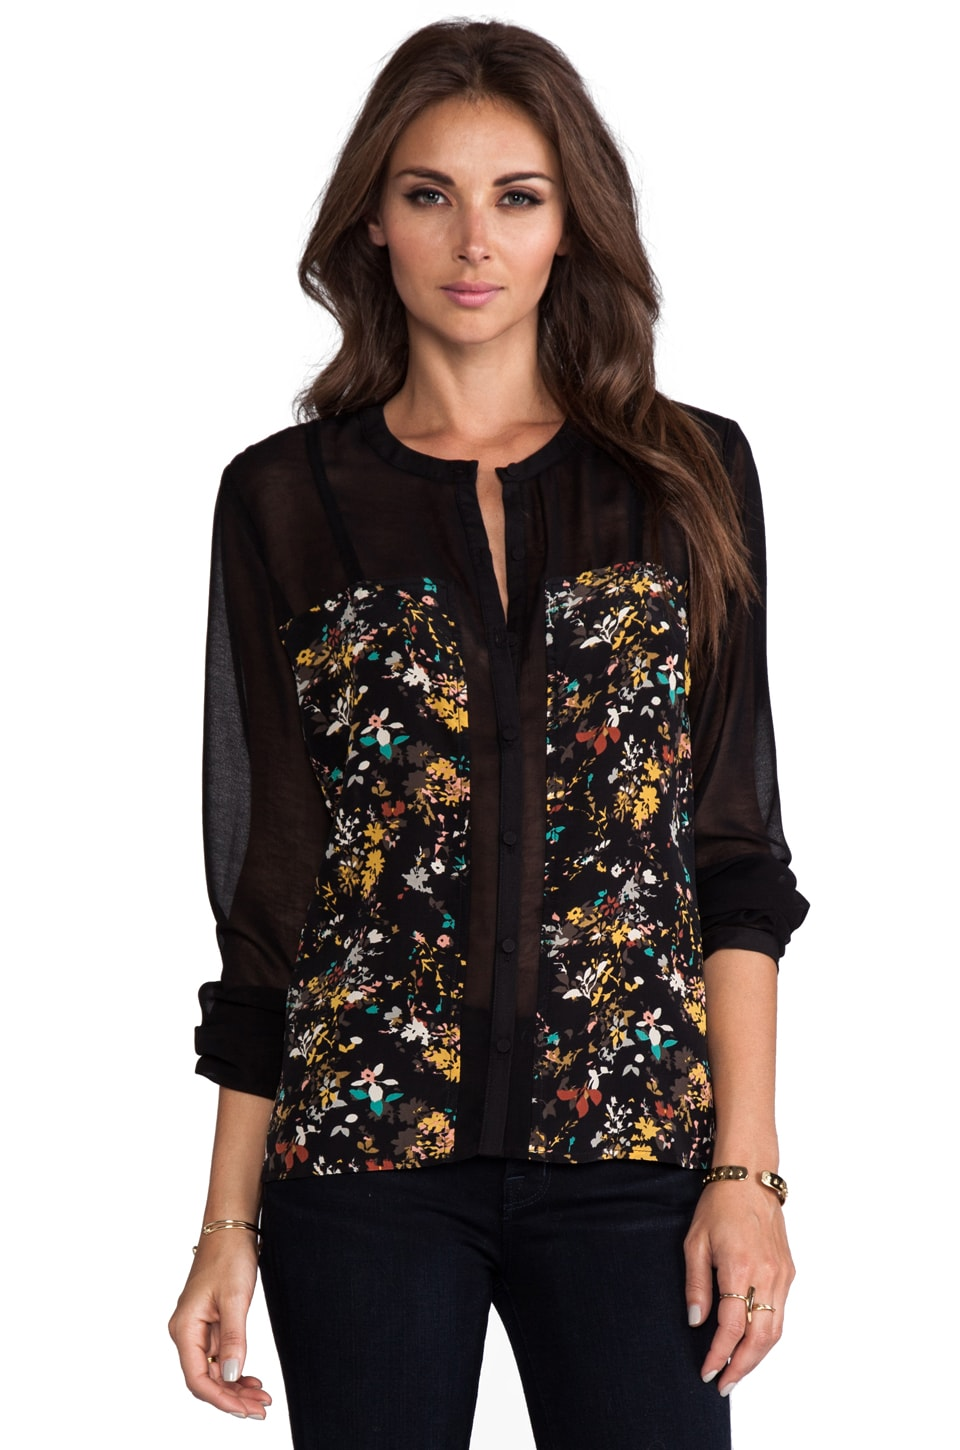 Greylin Adrien Long Sleeve Blouse in Black